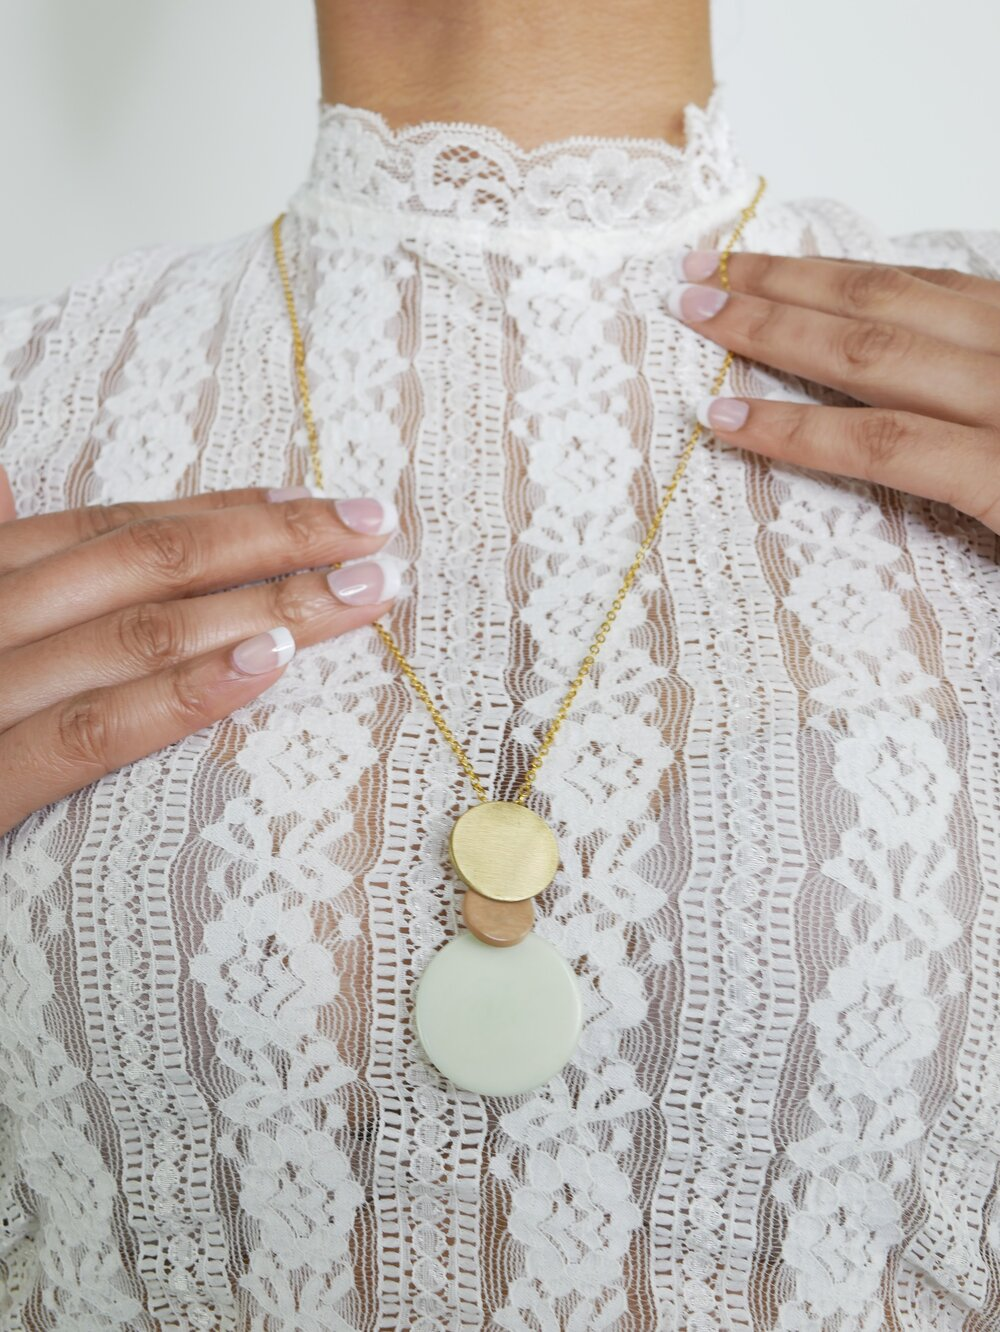 Woman wearing the overlapping tagua disc pendant and chain necklace over a white top